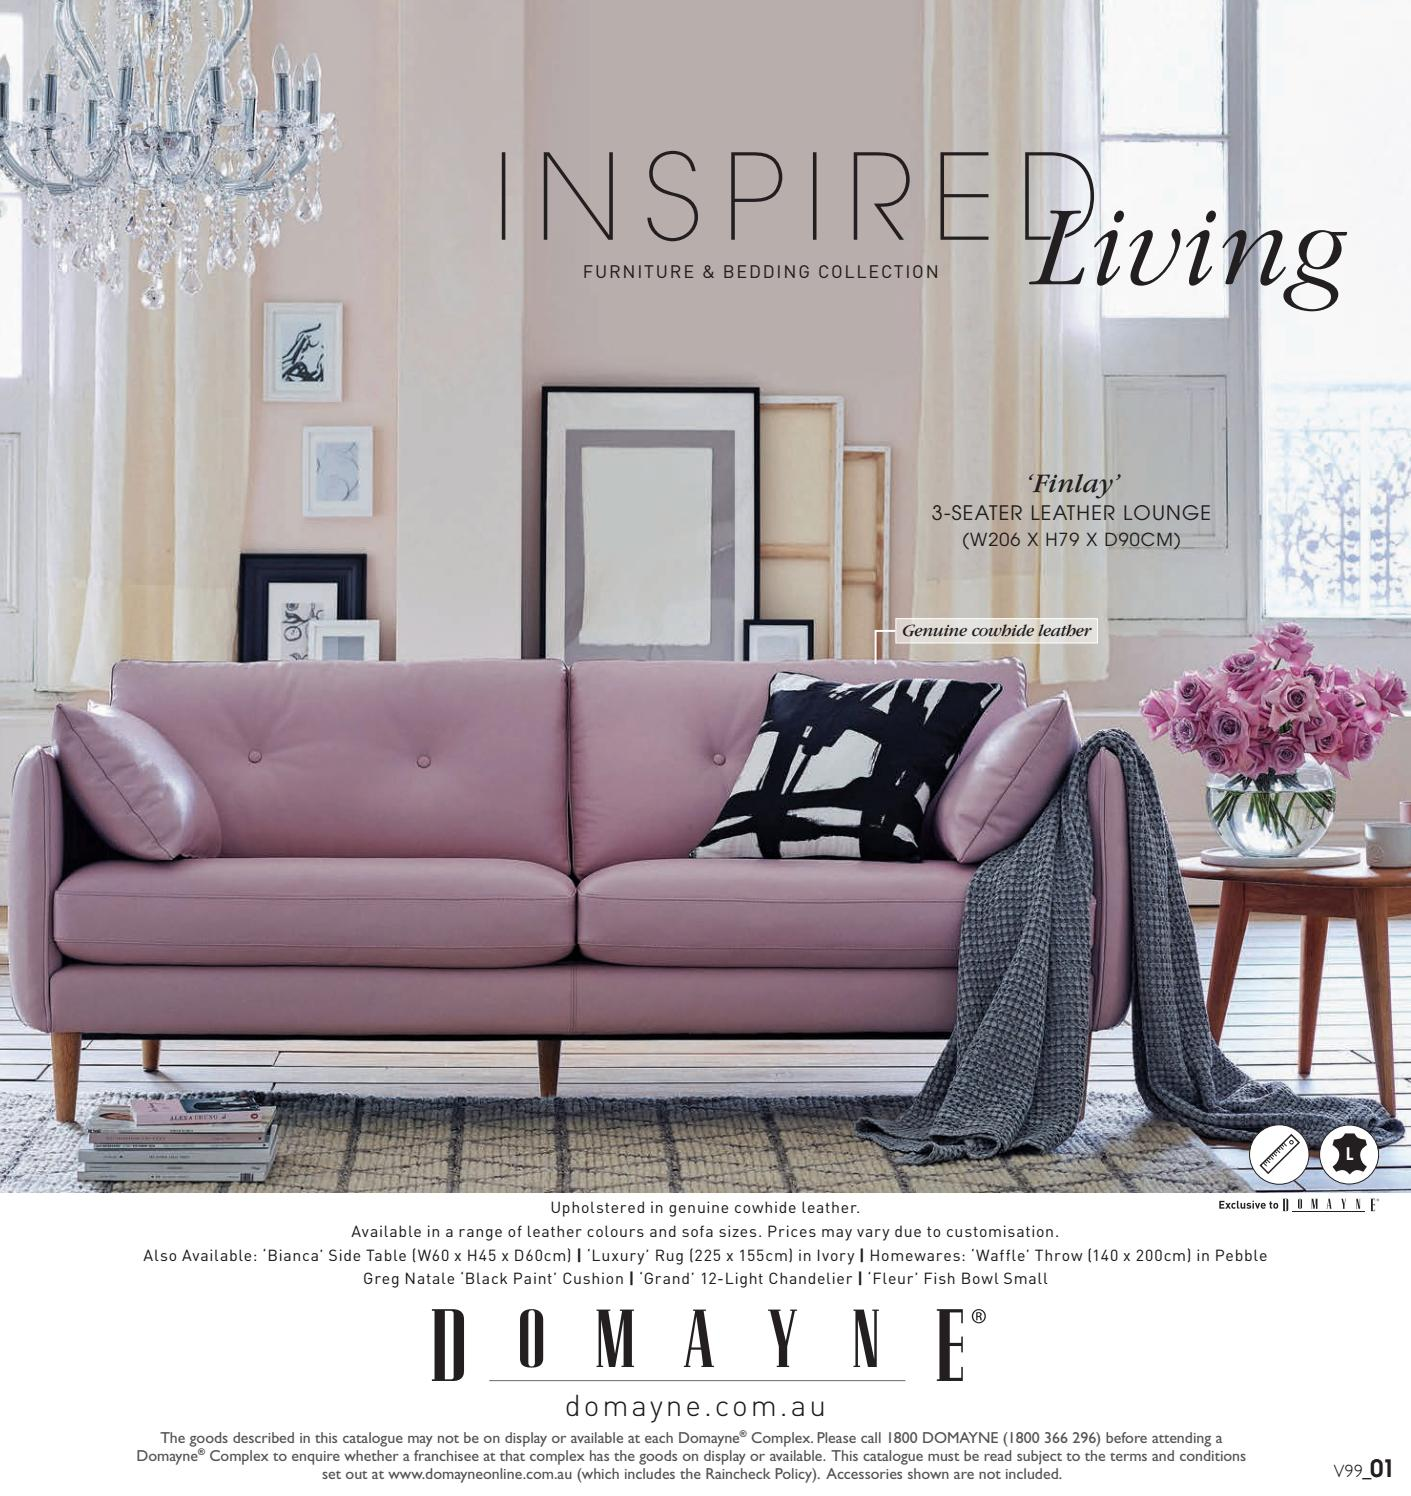 Swell Inspired Living By Generic Publications Issuu Pabps2019 Chair Design Images Pabps2019Com